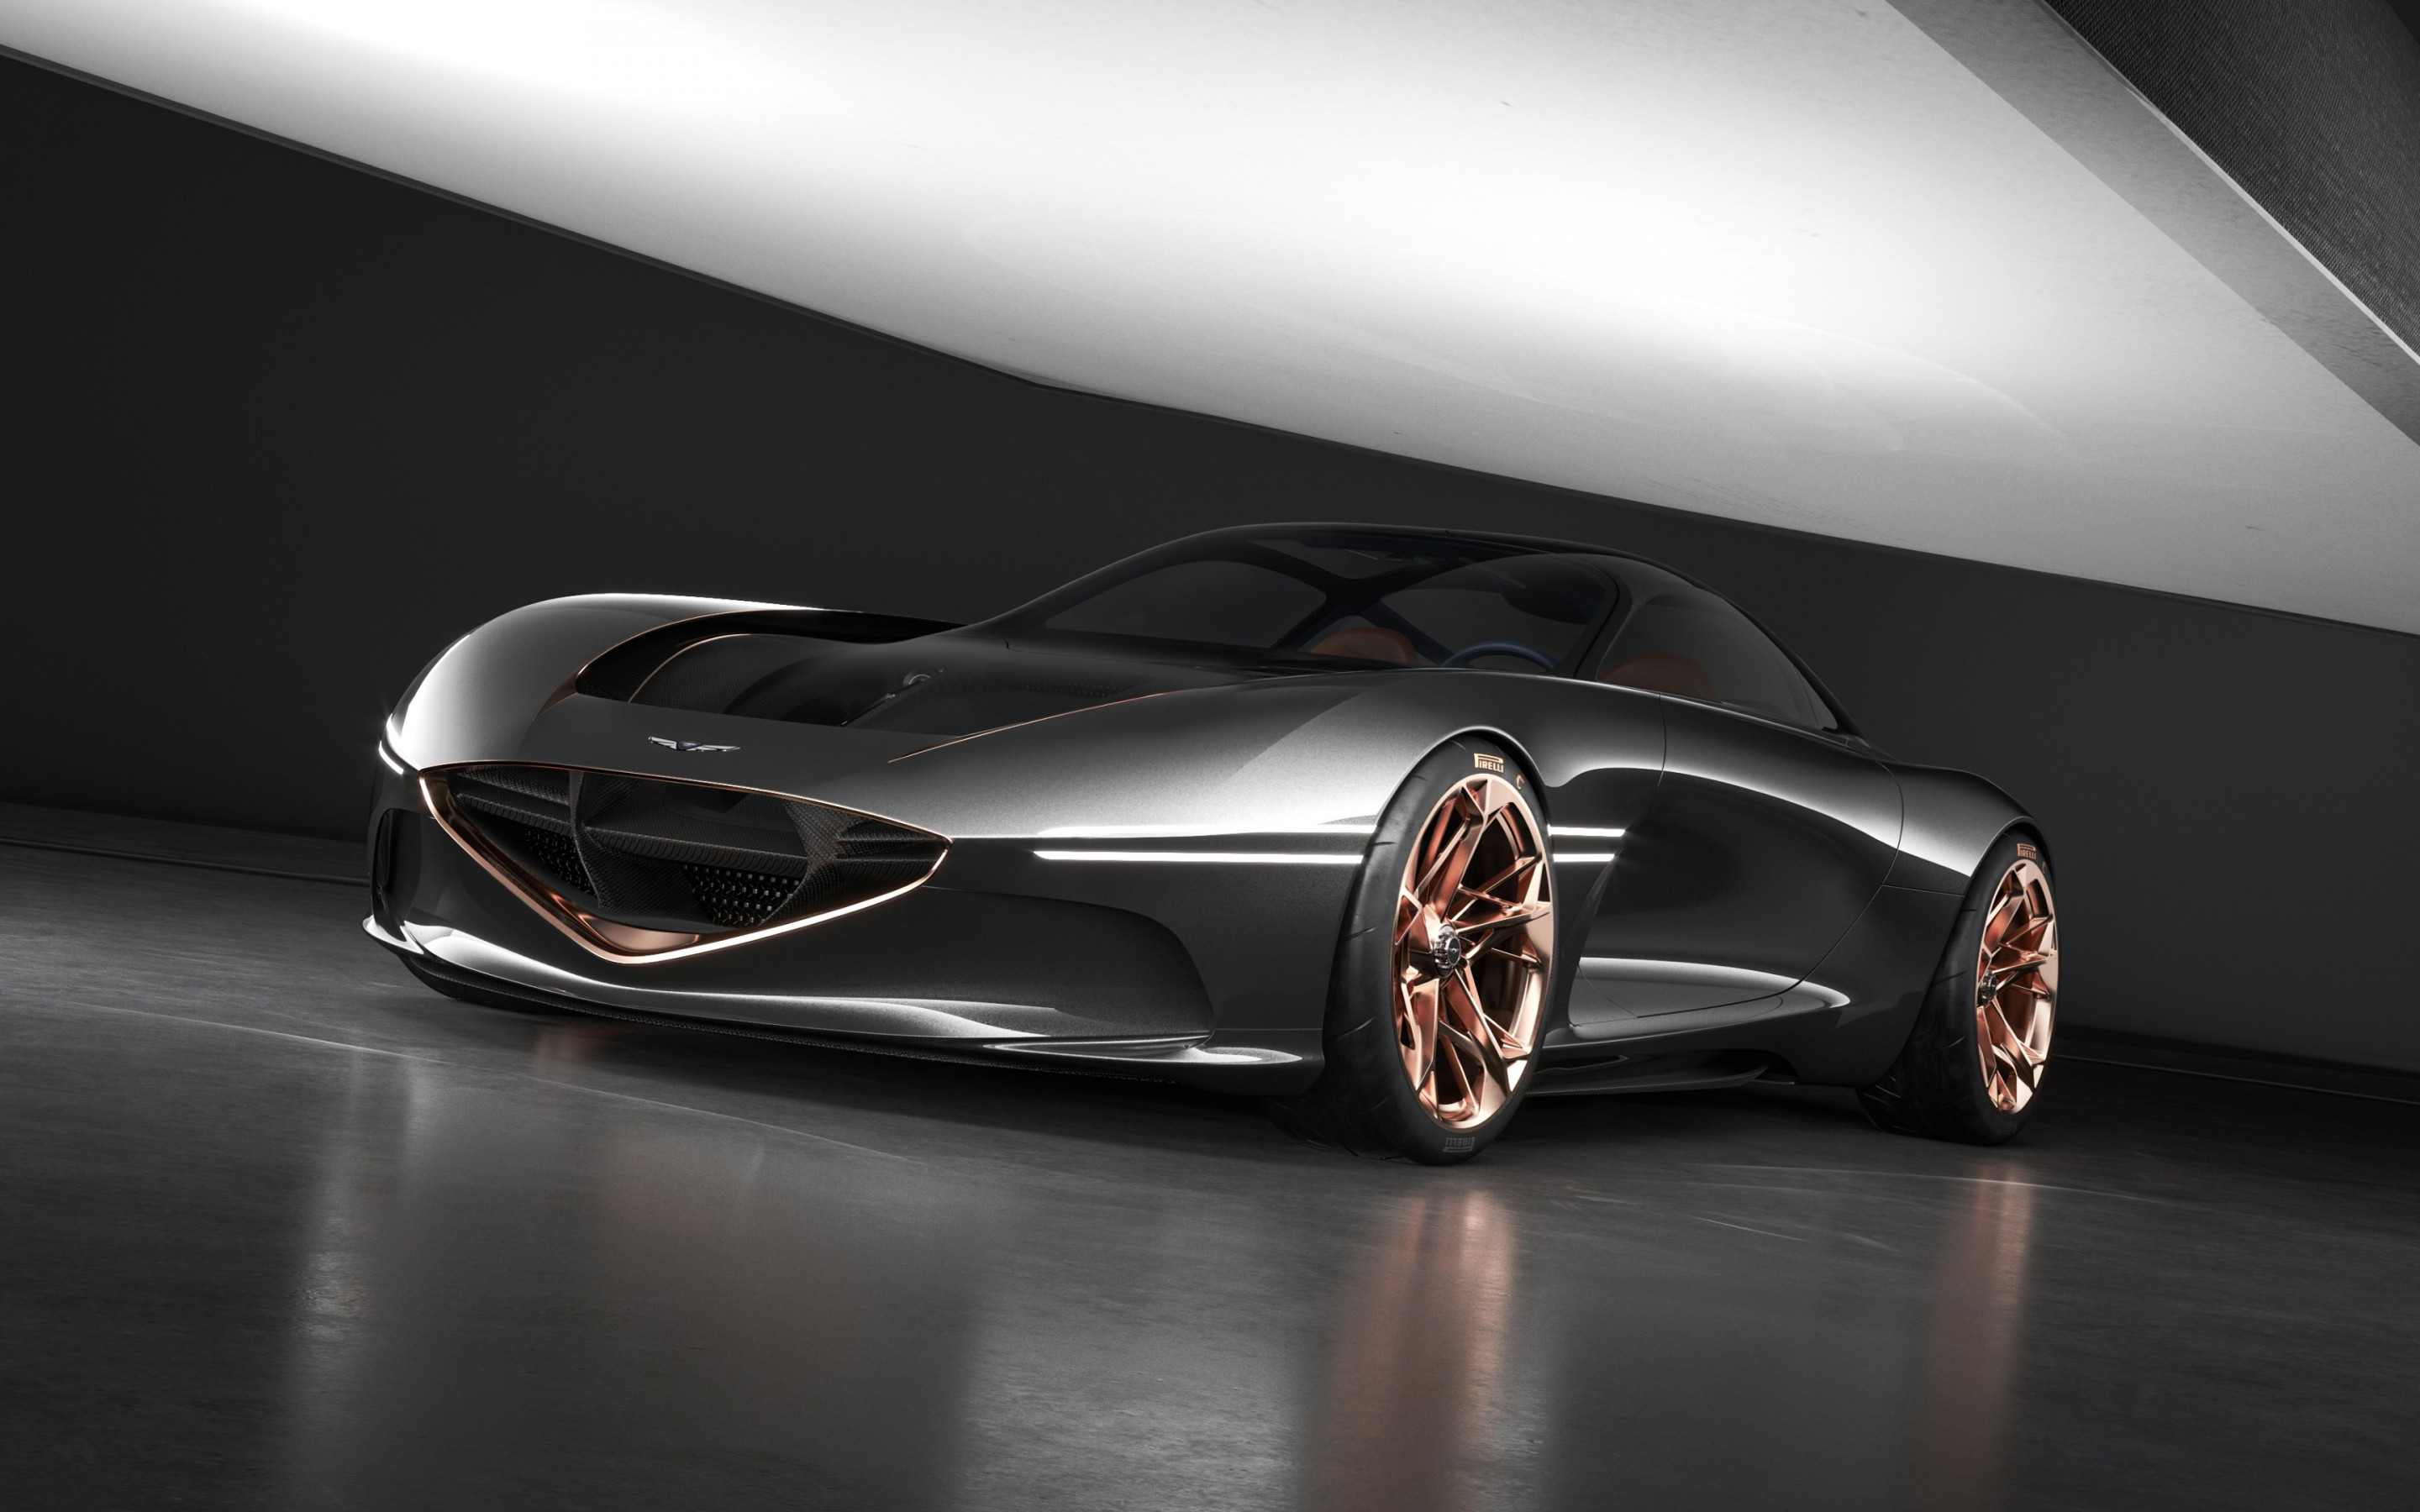 Genesis Essentia concept car wallpaper 2880x1800